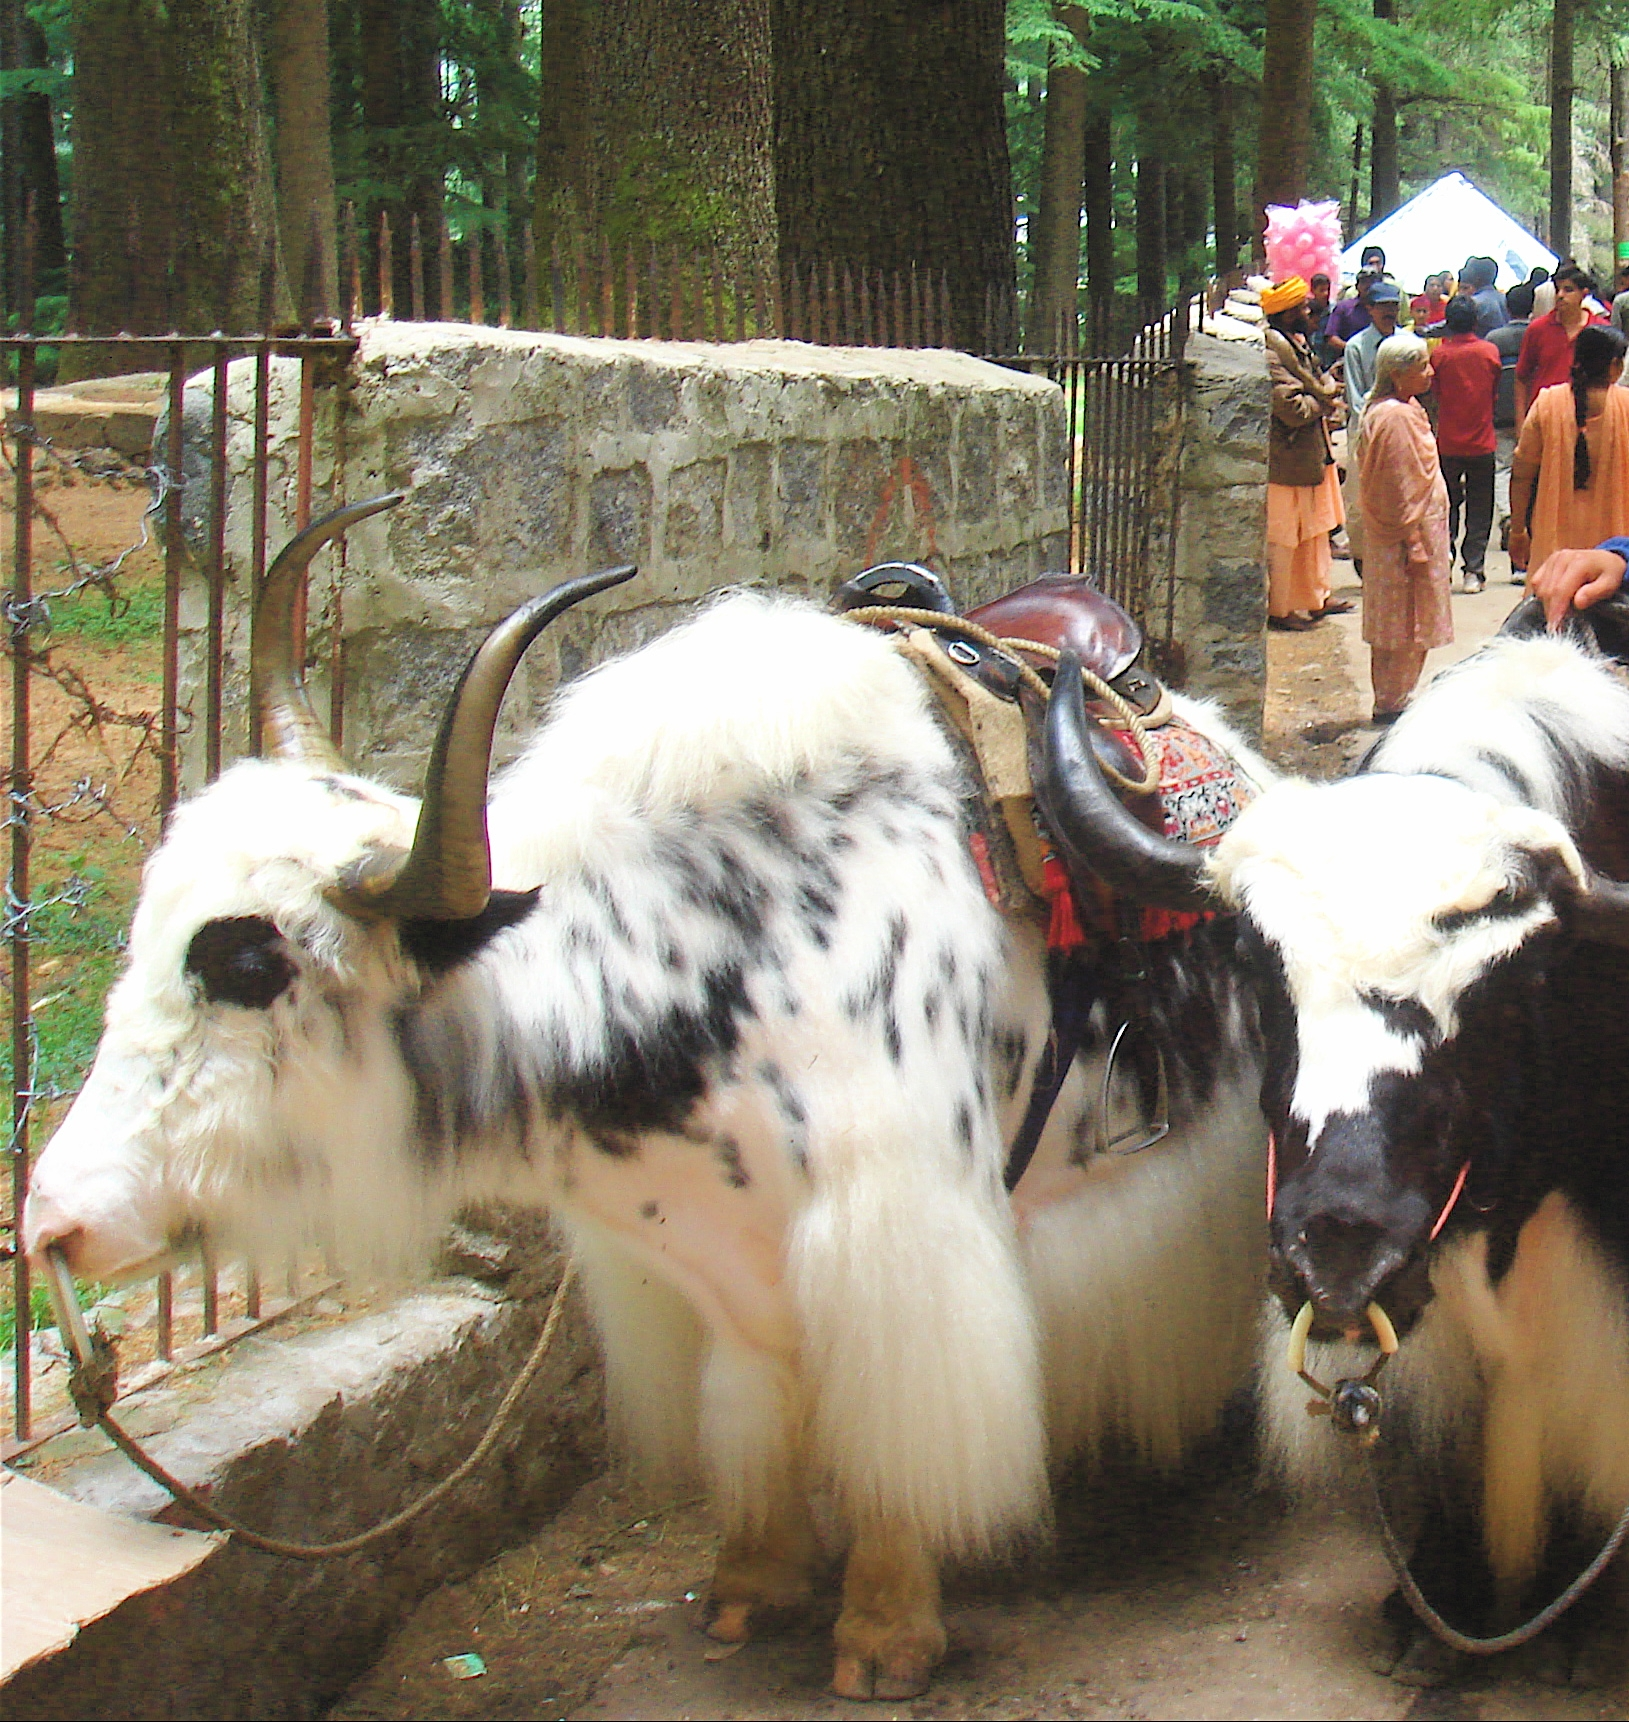 http://commons.wikipedia.org/wiki/File:Yaks_in_Manali.jpg